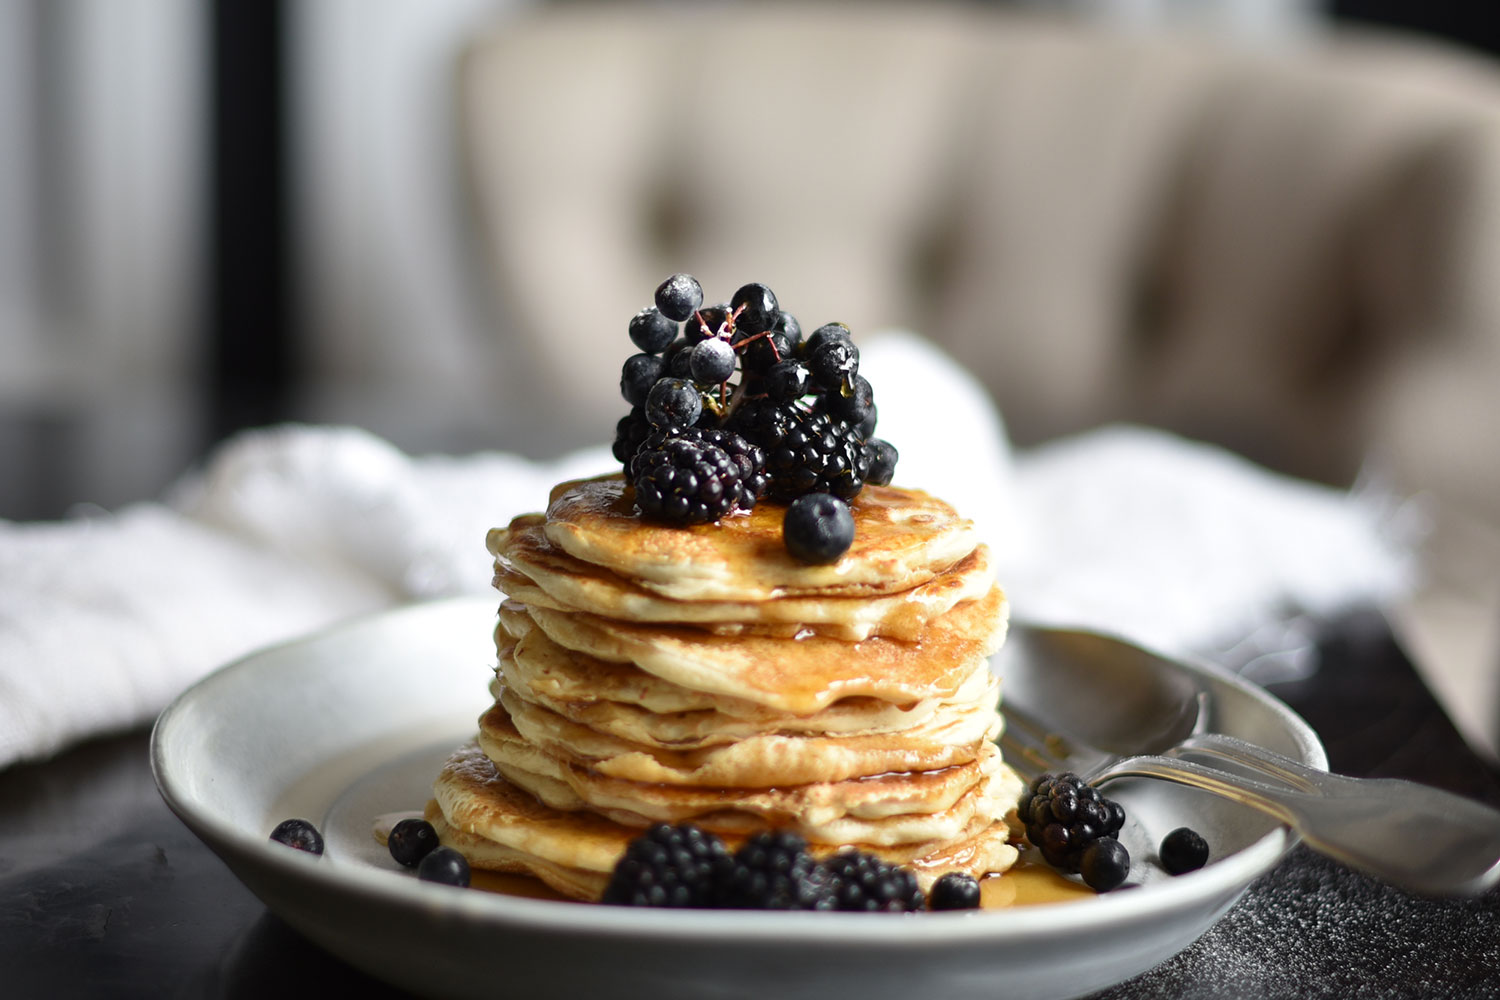 Blackberries Amp Blueberries Pancakes With Maple Syrup